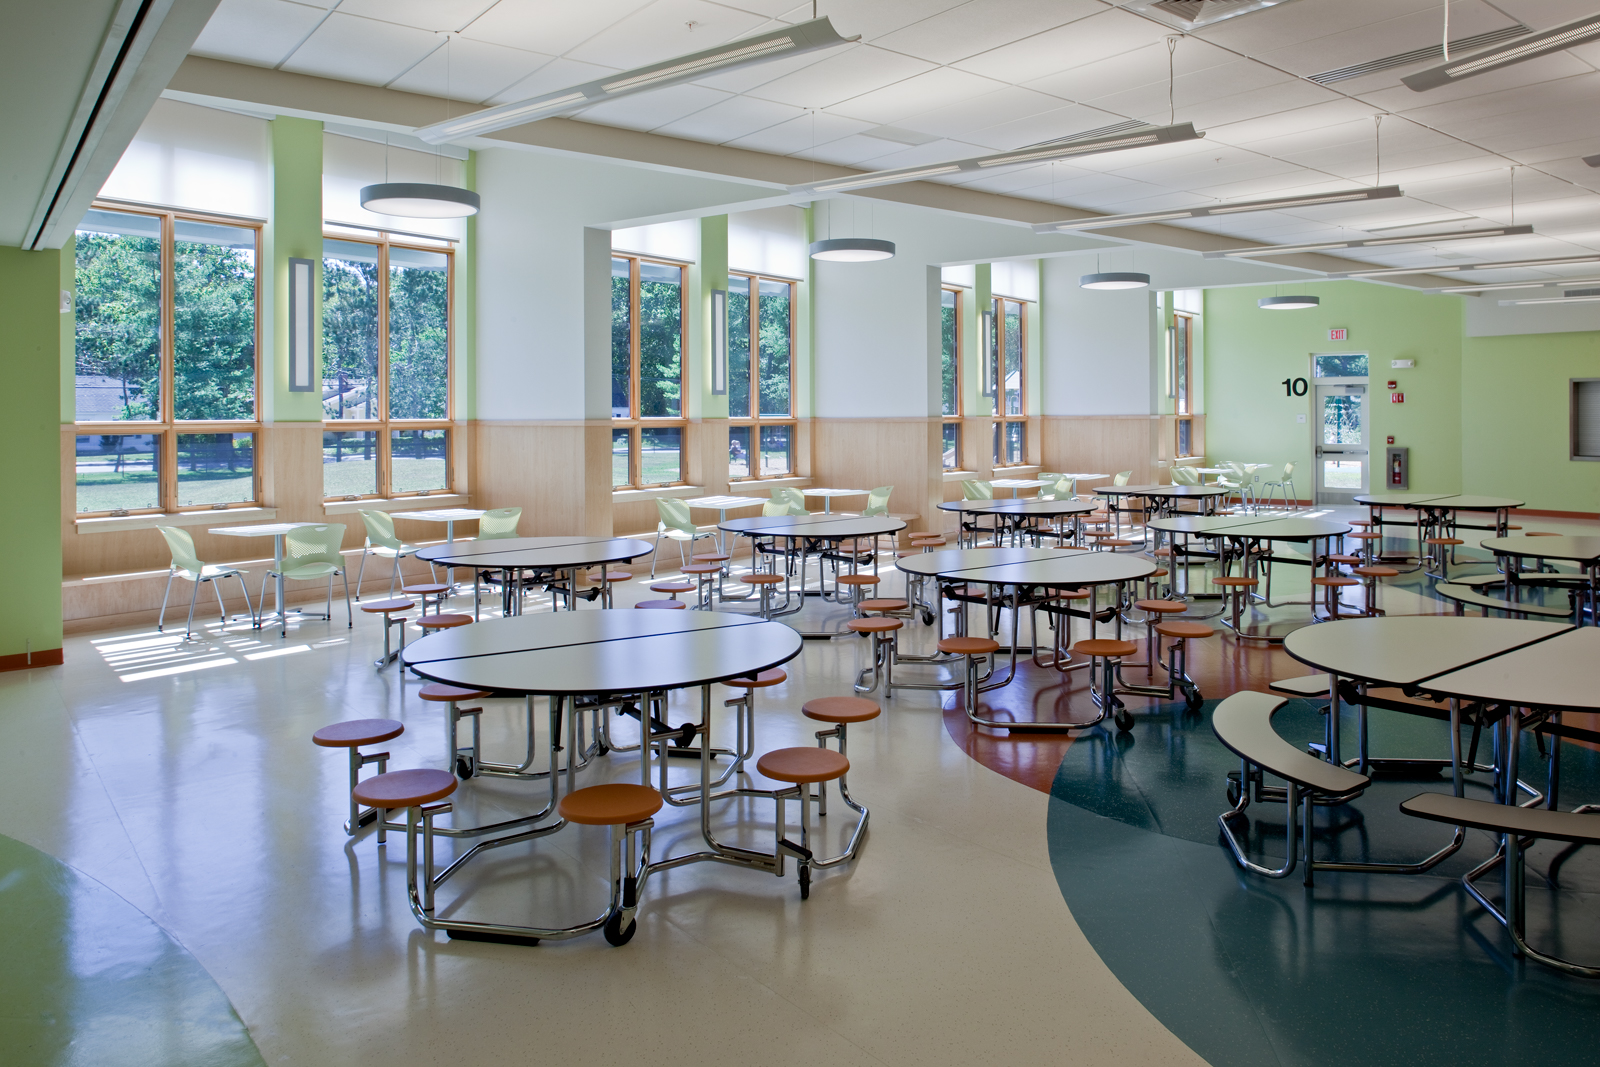 Perimeter benches and diversity of seating in the cafeteria break down the large room, as do views to the front playground and street.